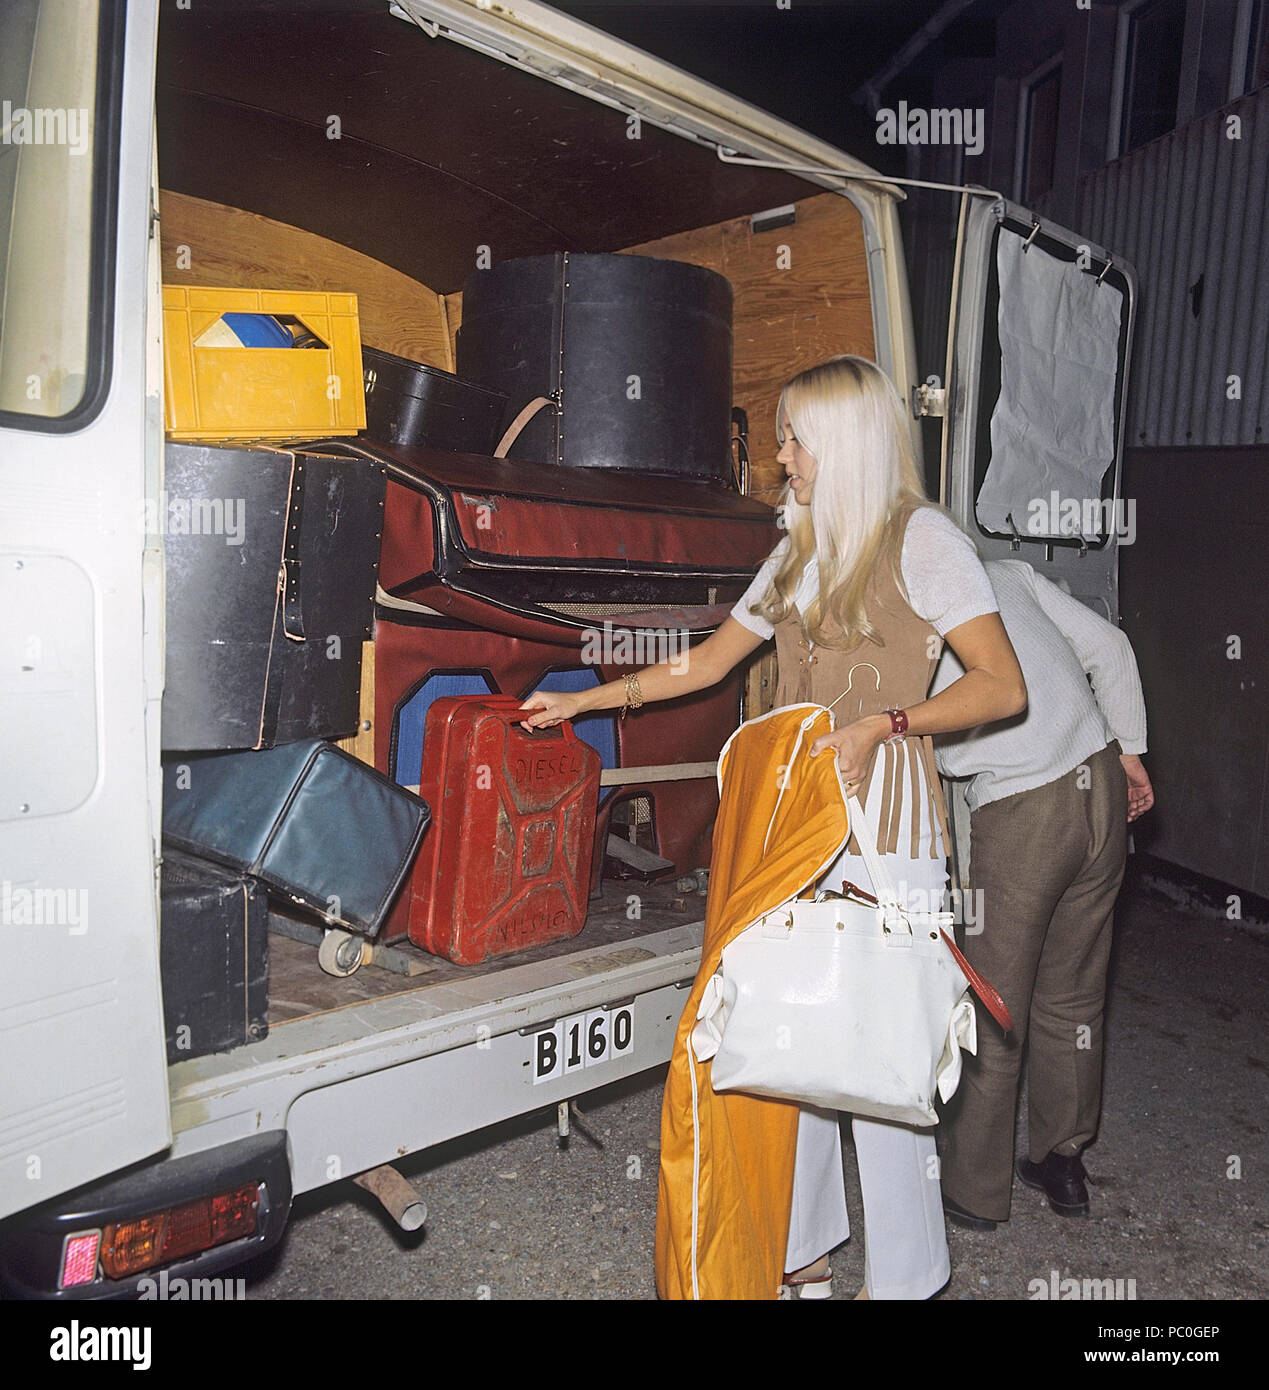 Agnetha Fältskog. Singer. Member of the pop group ABBA. Born 1950. Pictured here 1970 when touring in Sweden with The Agnetha Fältskogs show. Photo: Kristoffersson - Stock Image